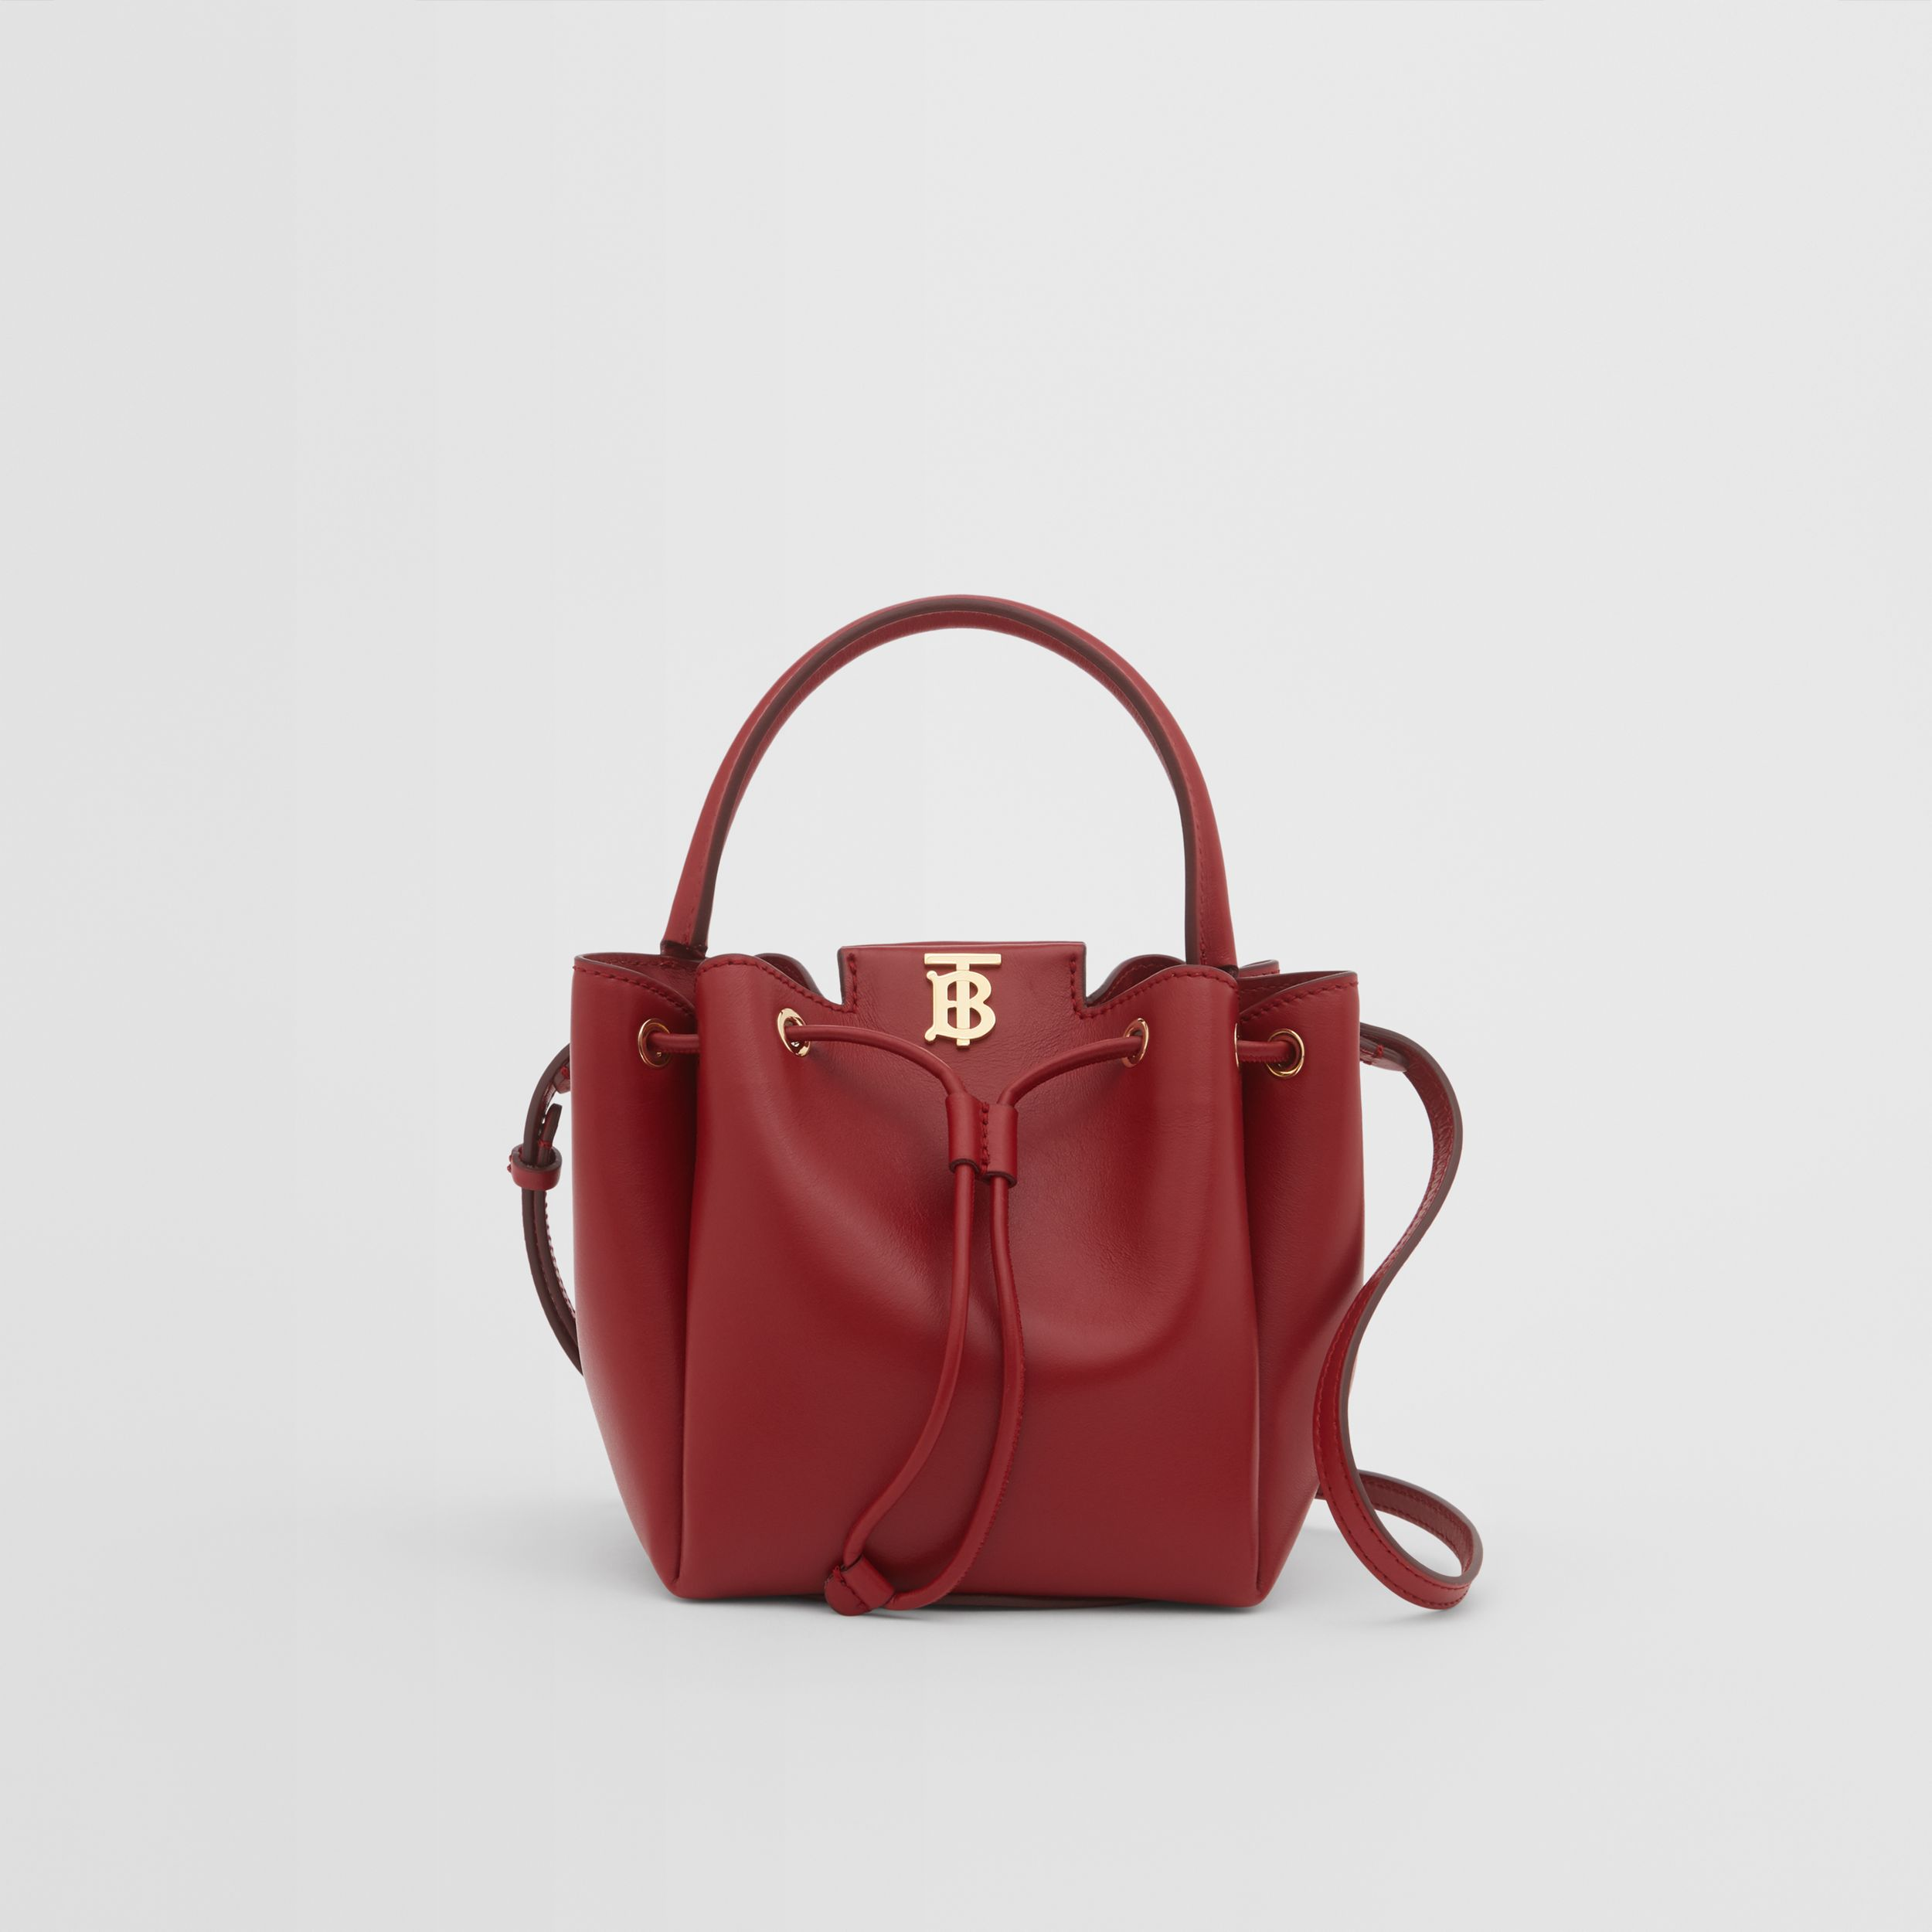 Monogram Motif Leather Bucket Bag in Dark Carmine - Women | Burberry - 1